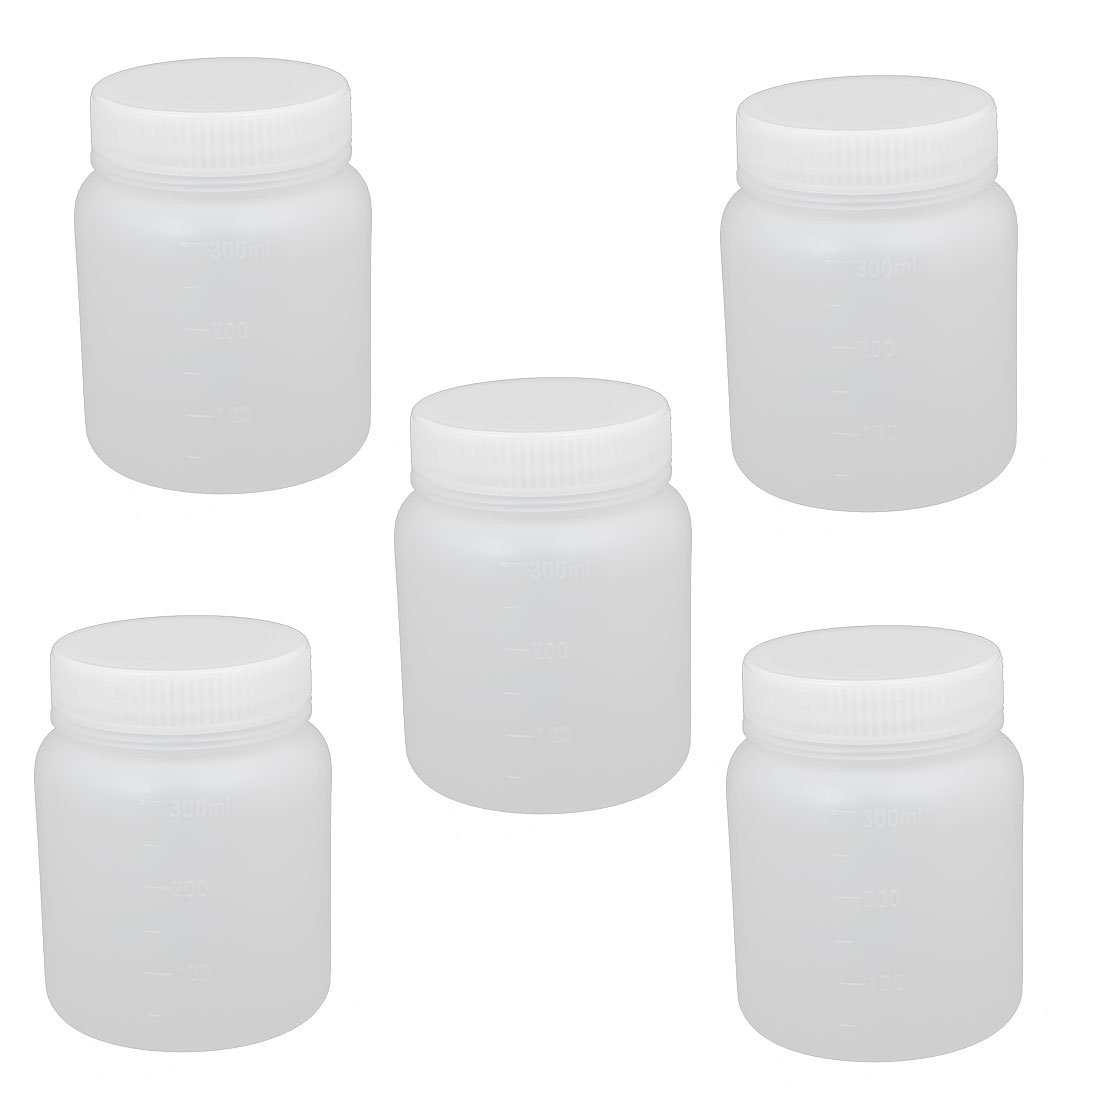 uxcell 5Pcs 300ml Plastic Wide Mouth Round Seal Liner Reagent Bottle Sample Bottle White